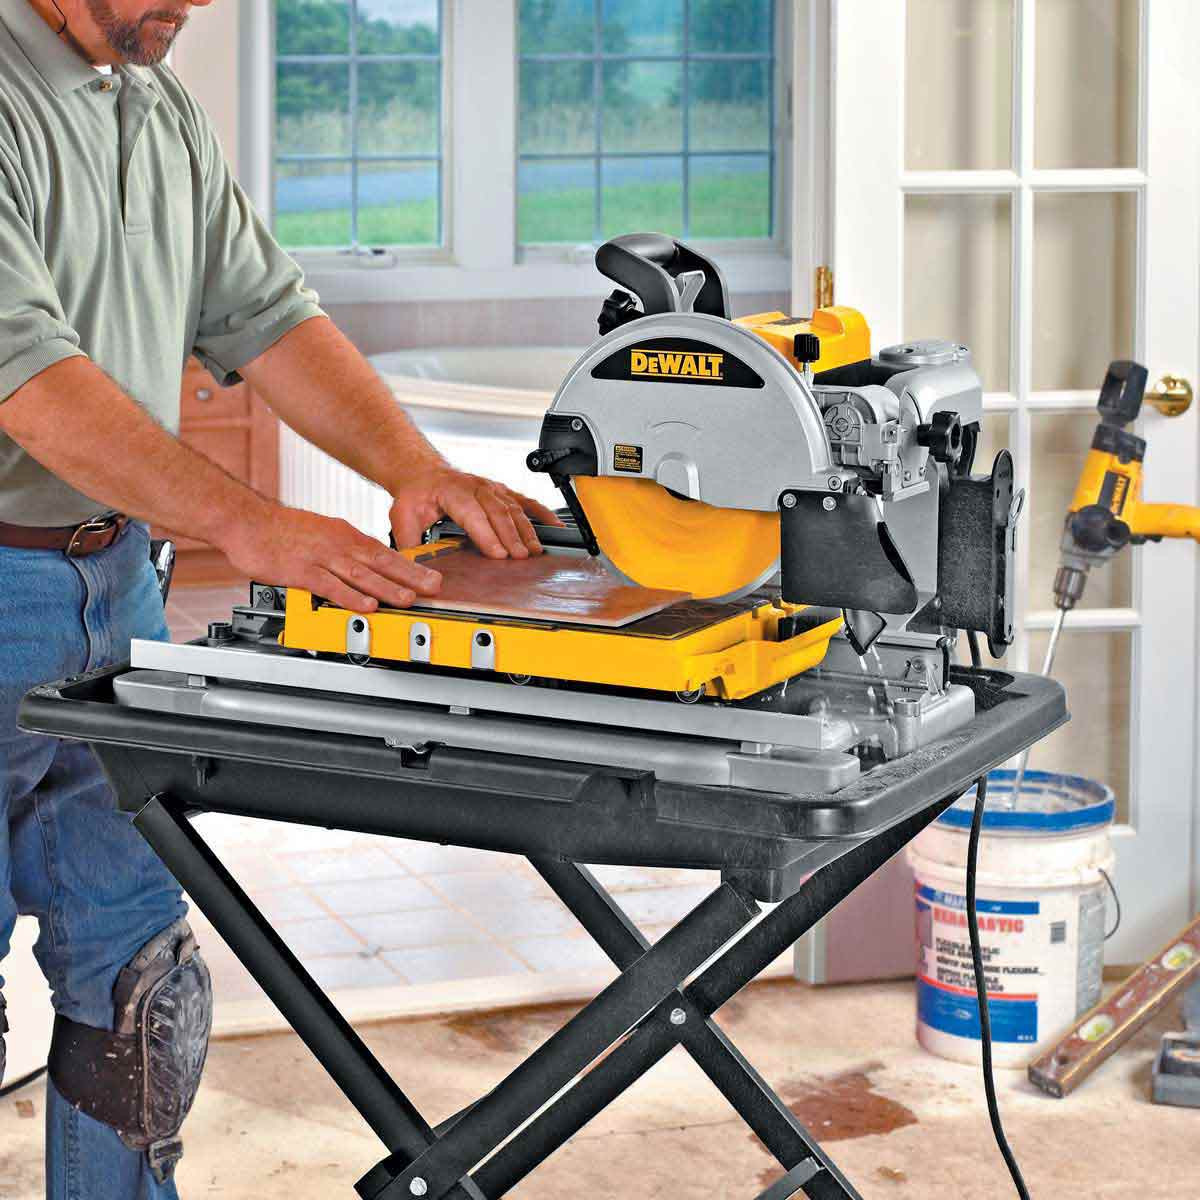 Reconditioned Dewalt Tile Saw